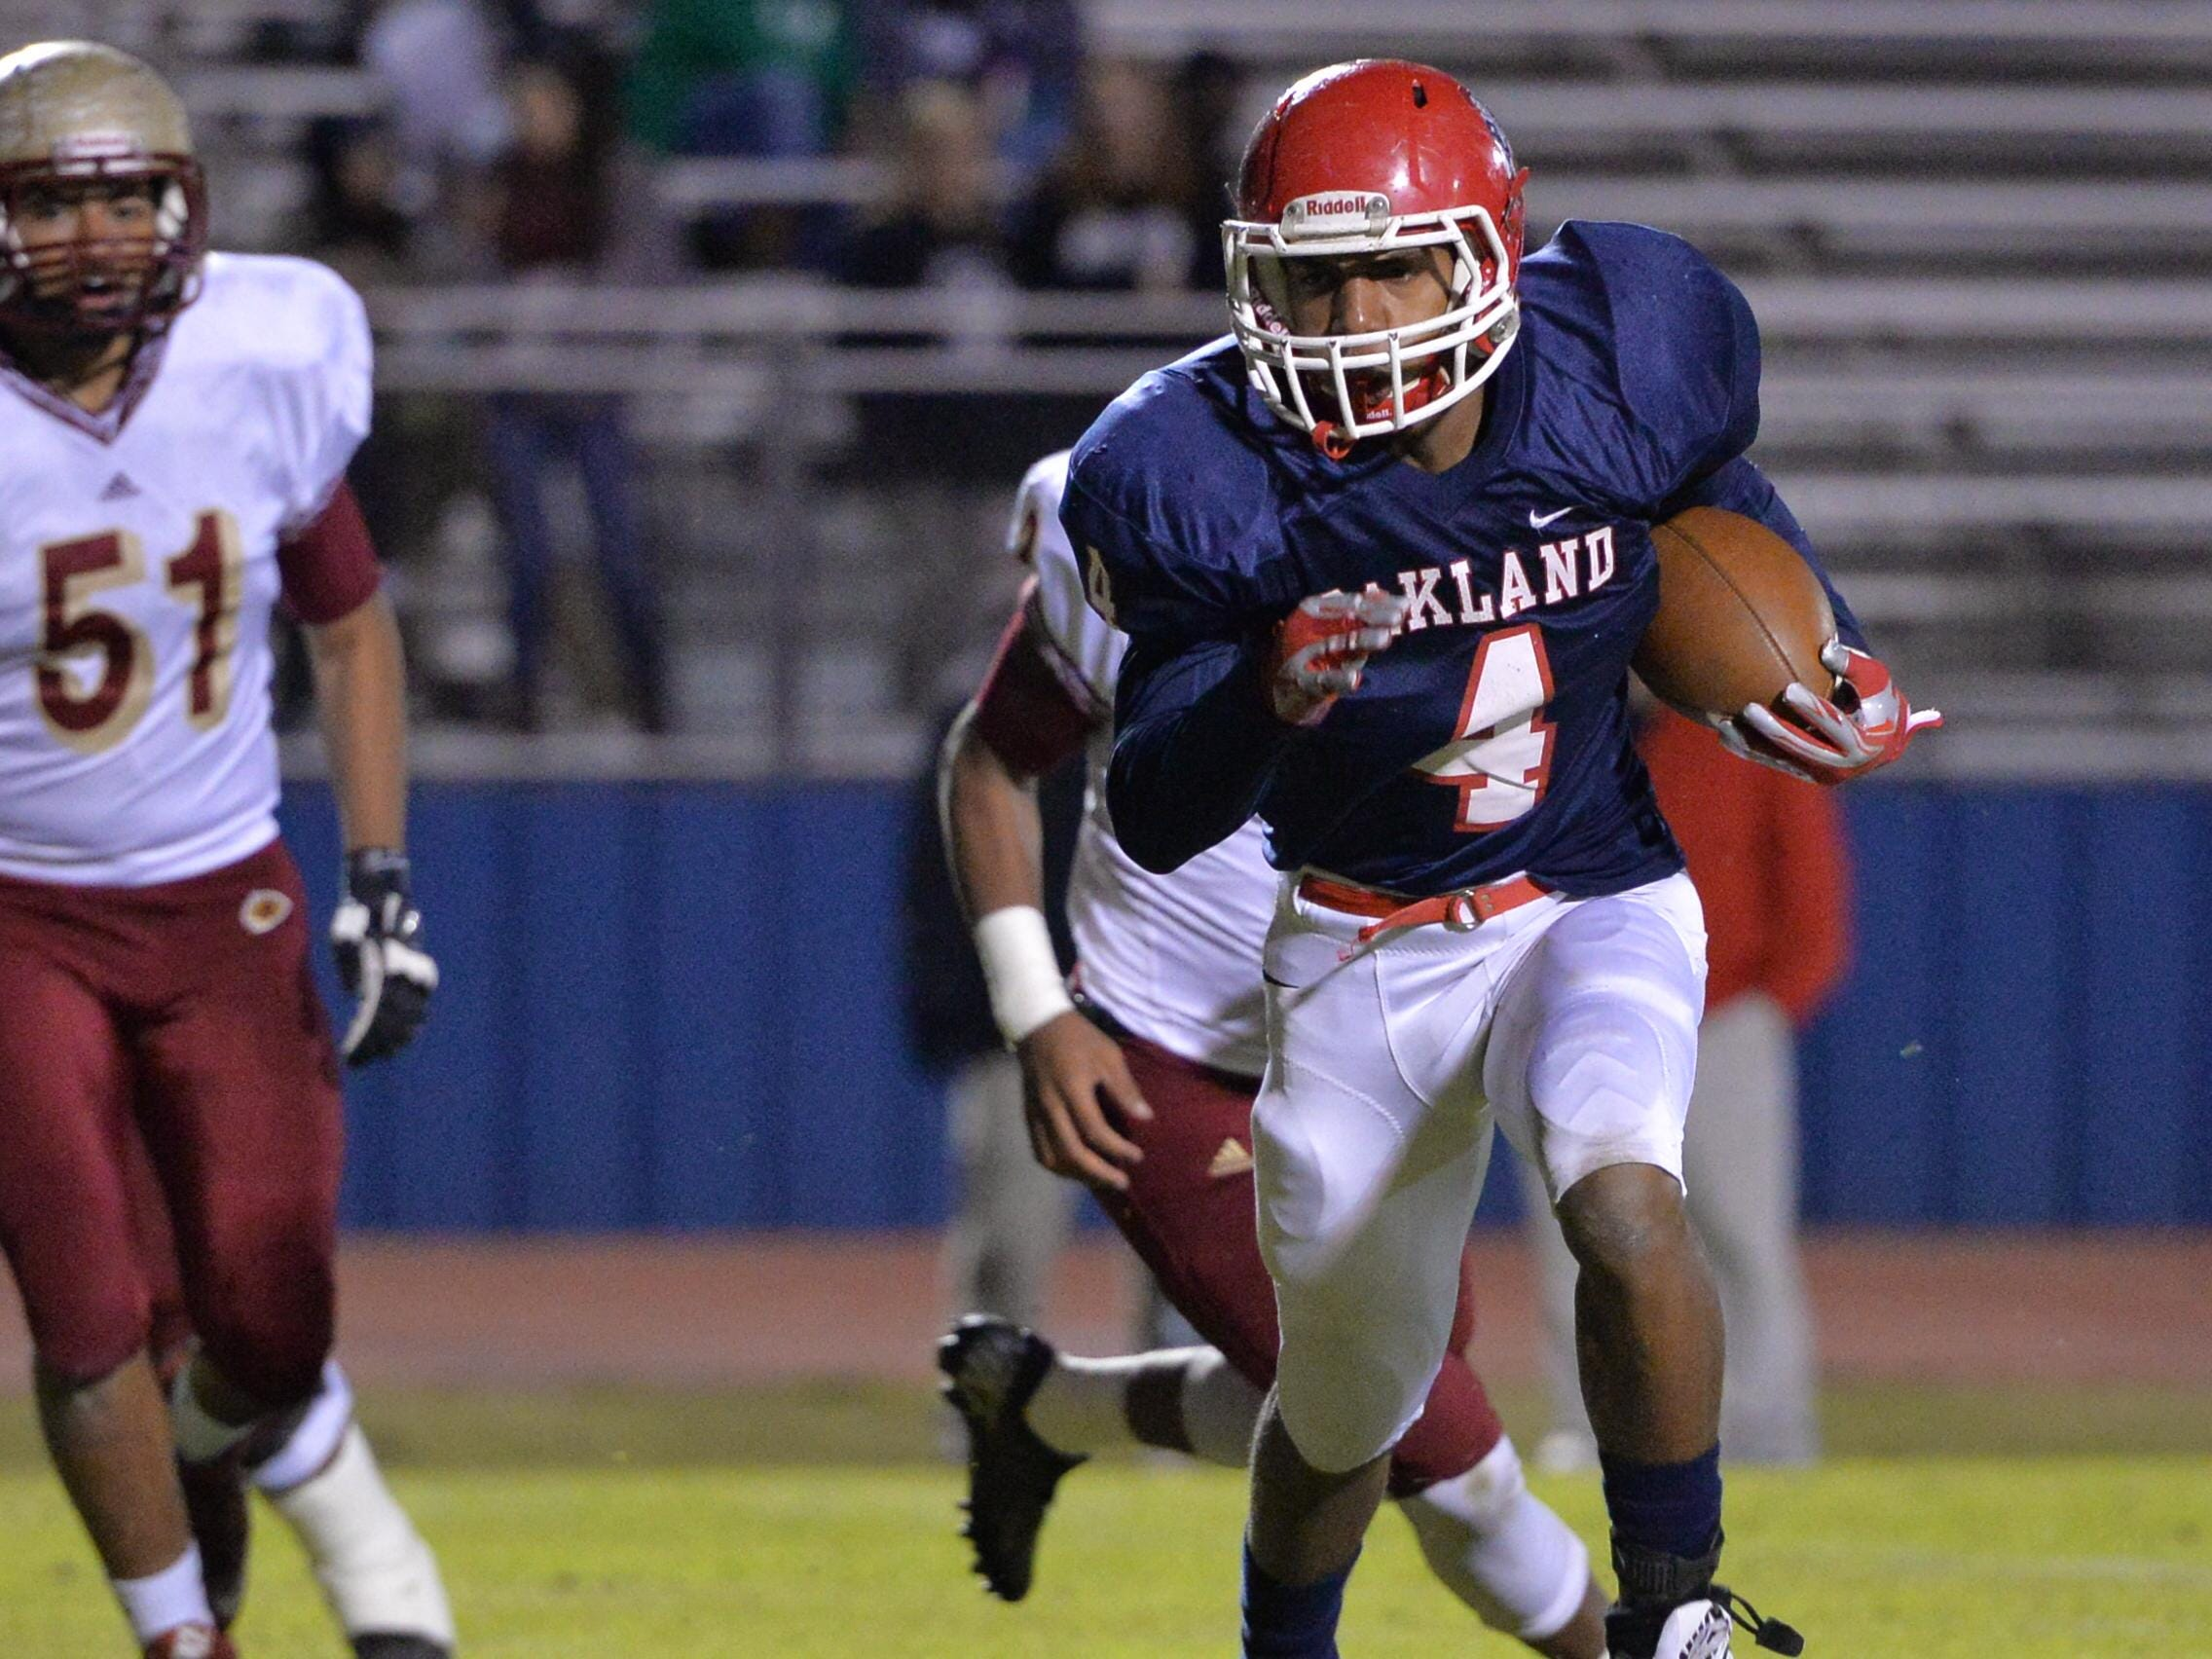 Oakland's Lazarius Patterson finished with 116 rushing yards in the Patriots' 54-7 win over Riverdale on Friday night.